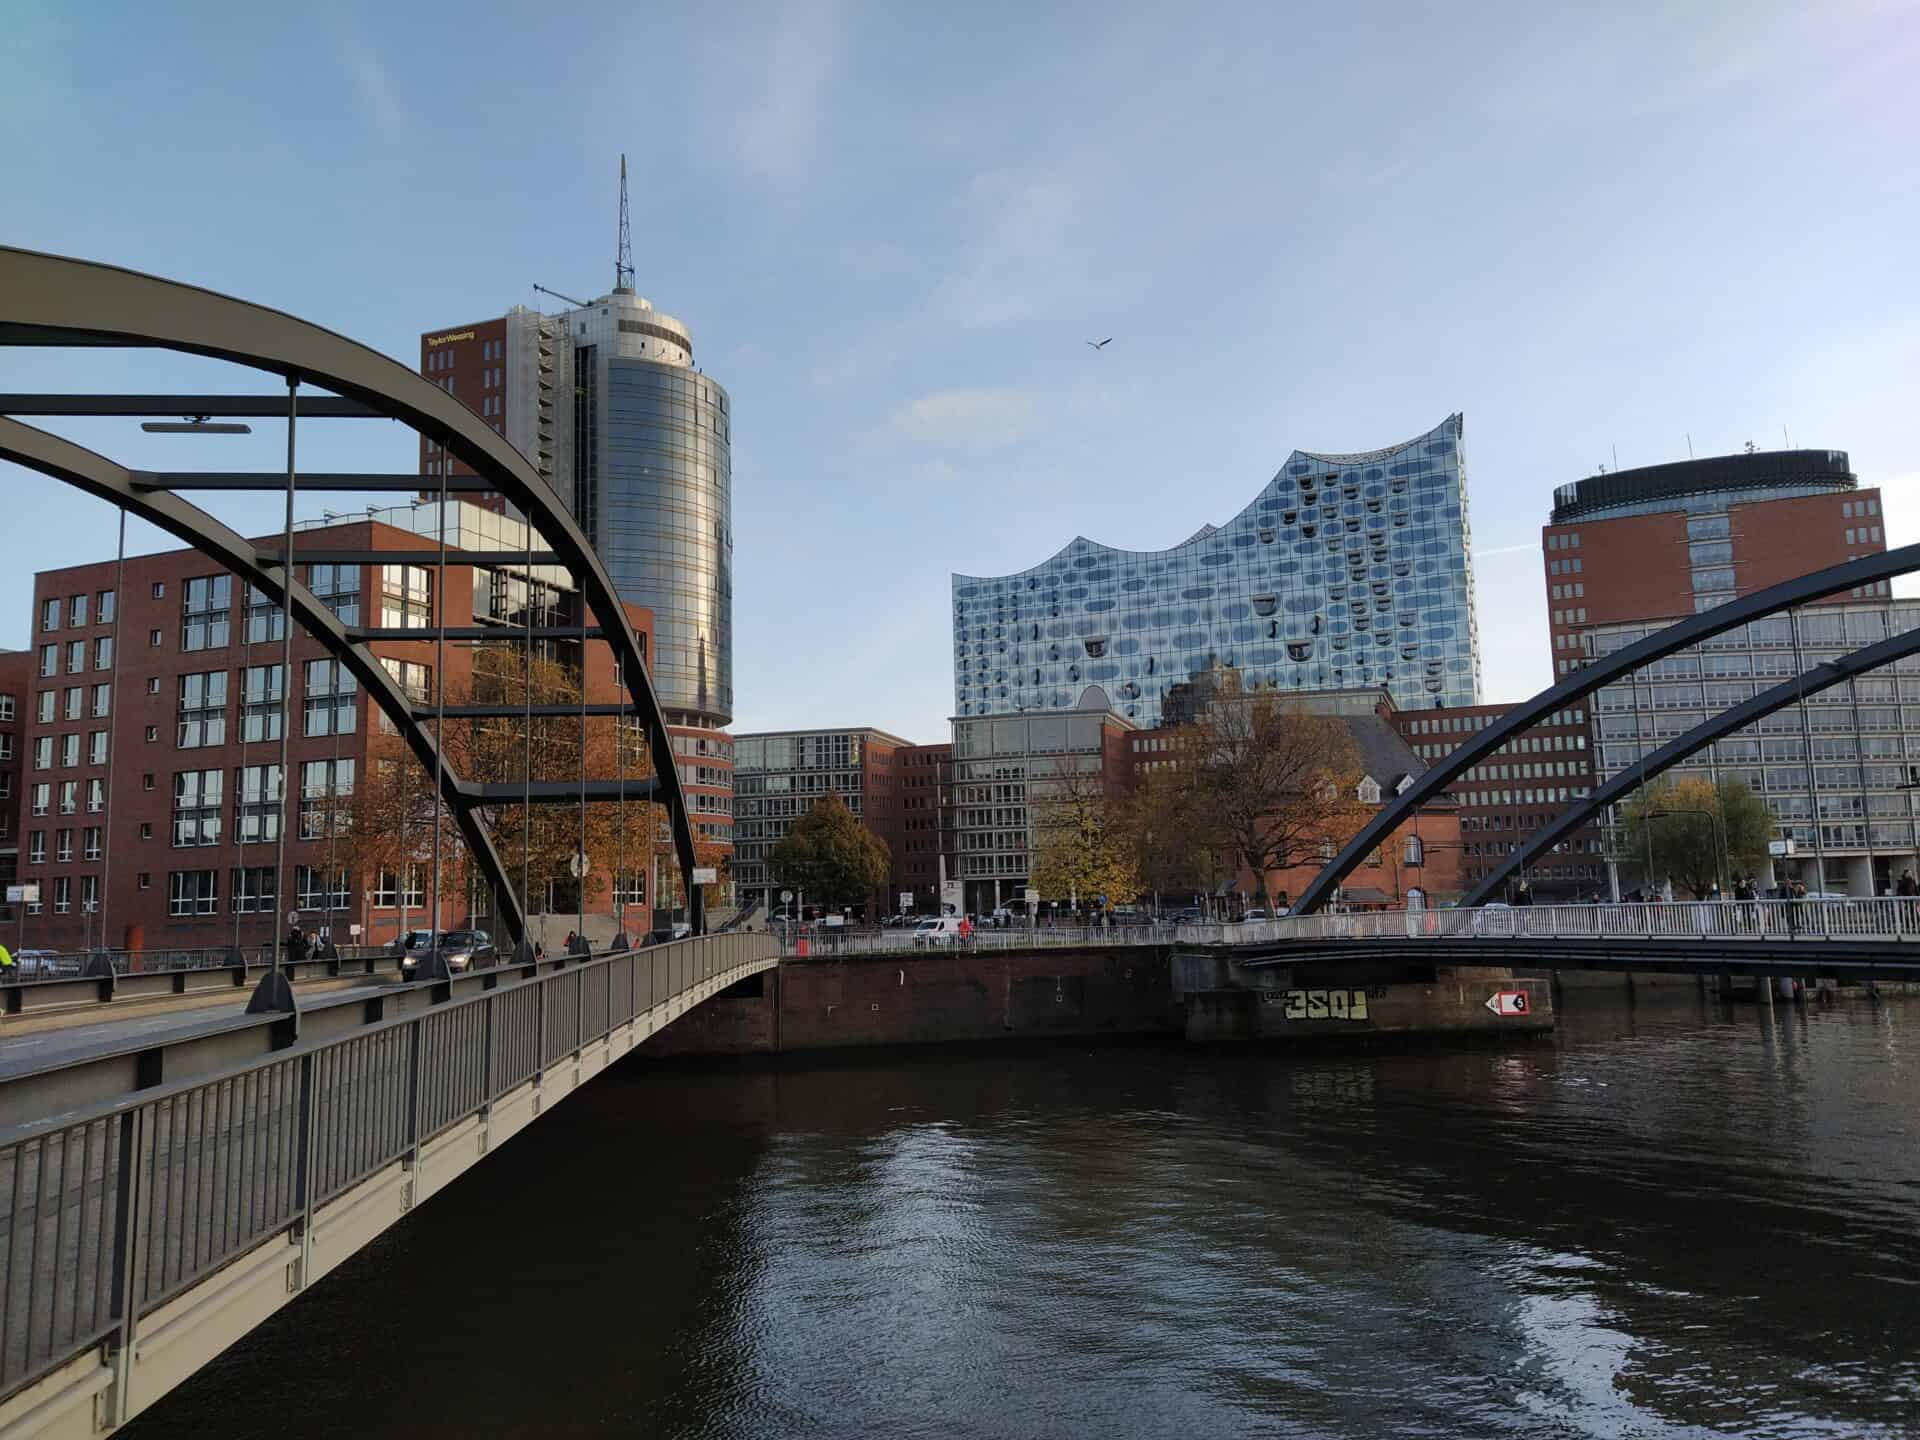 HafenCity - Hamburg's youngest district